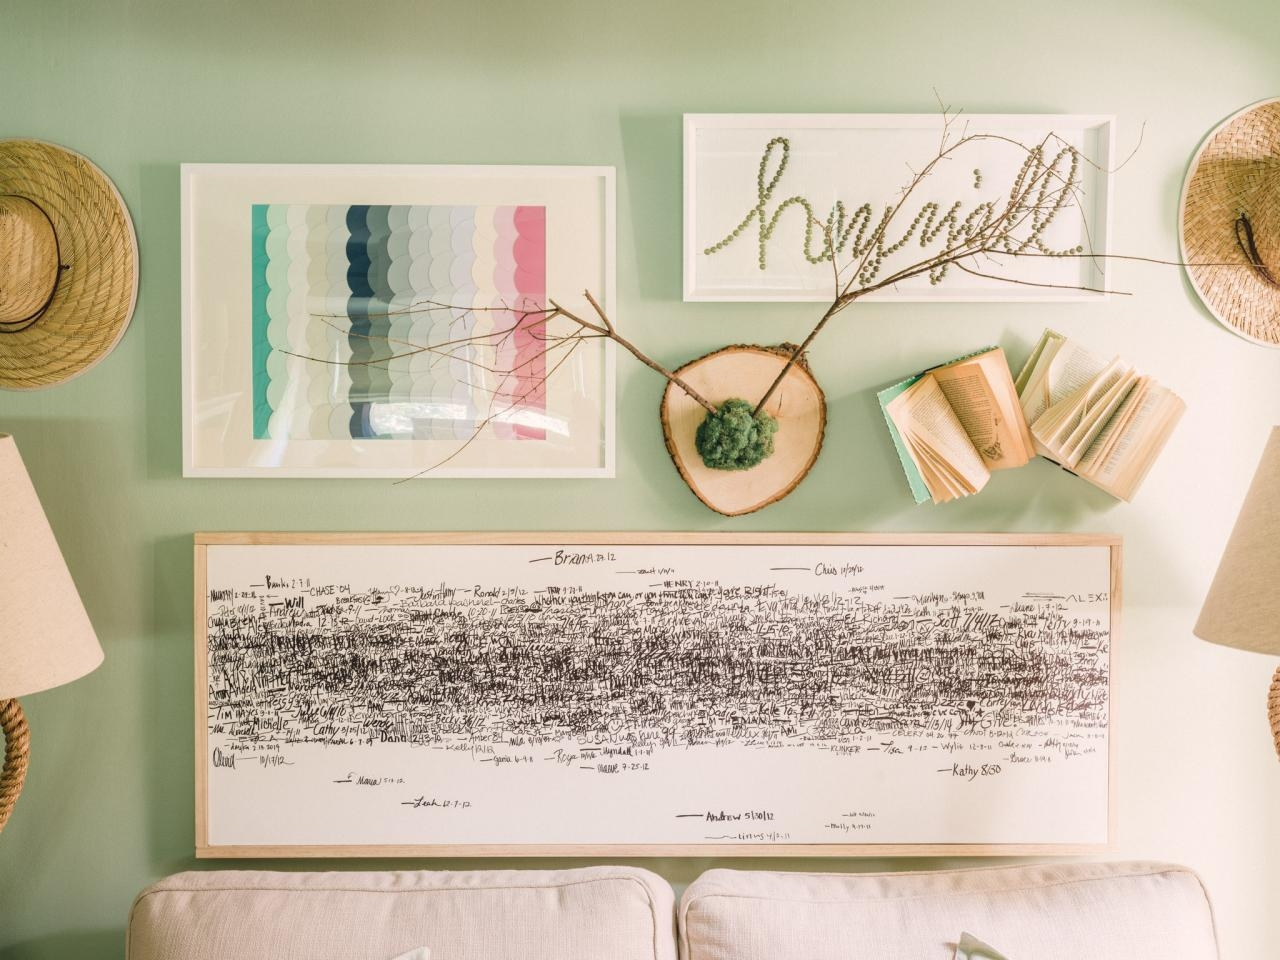 Creative Wall Decorations Ideas 25 Best Ideas About Diy Wall Art In Pinterest Diy Wall Art (Image 12 of 20)